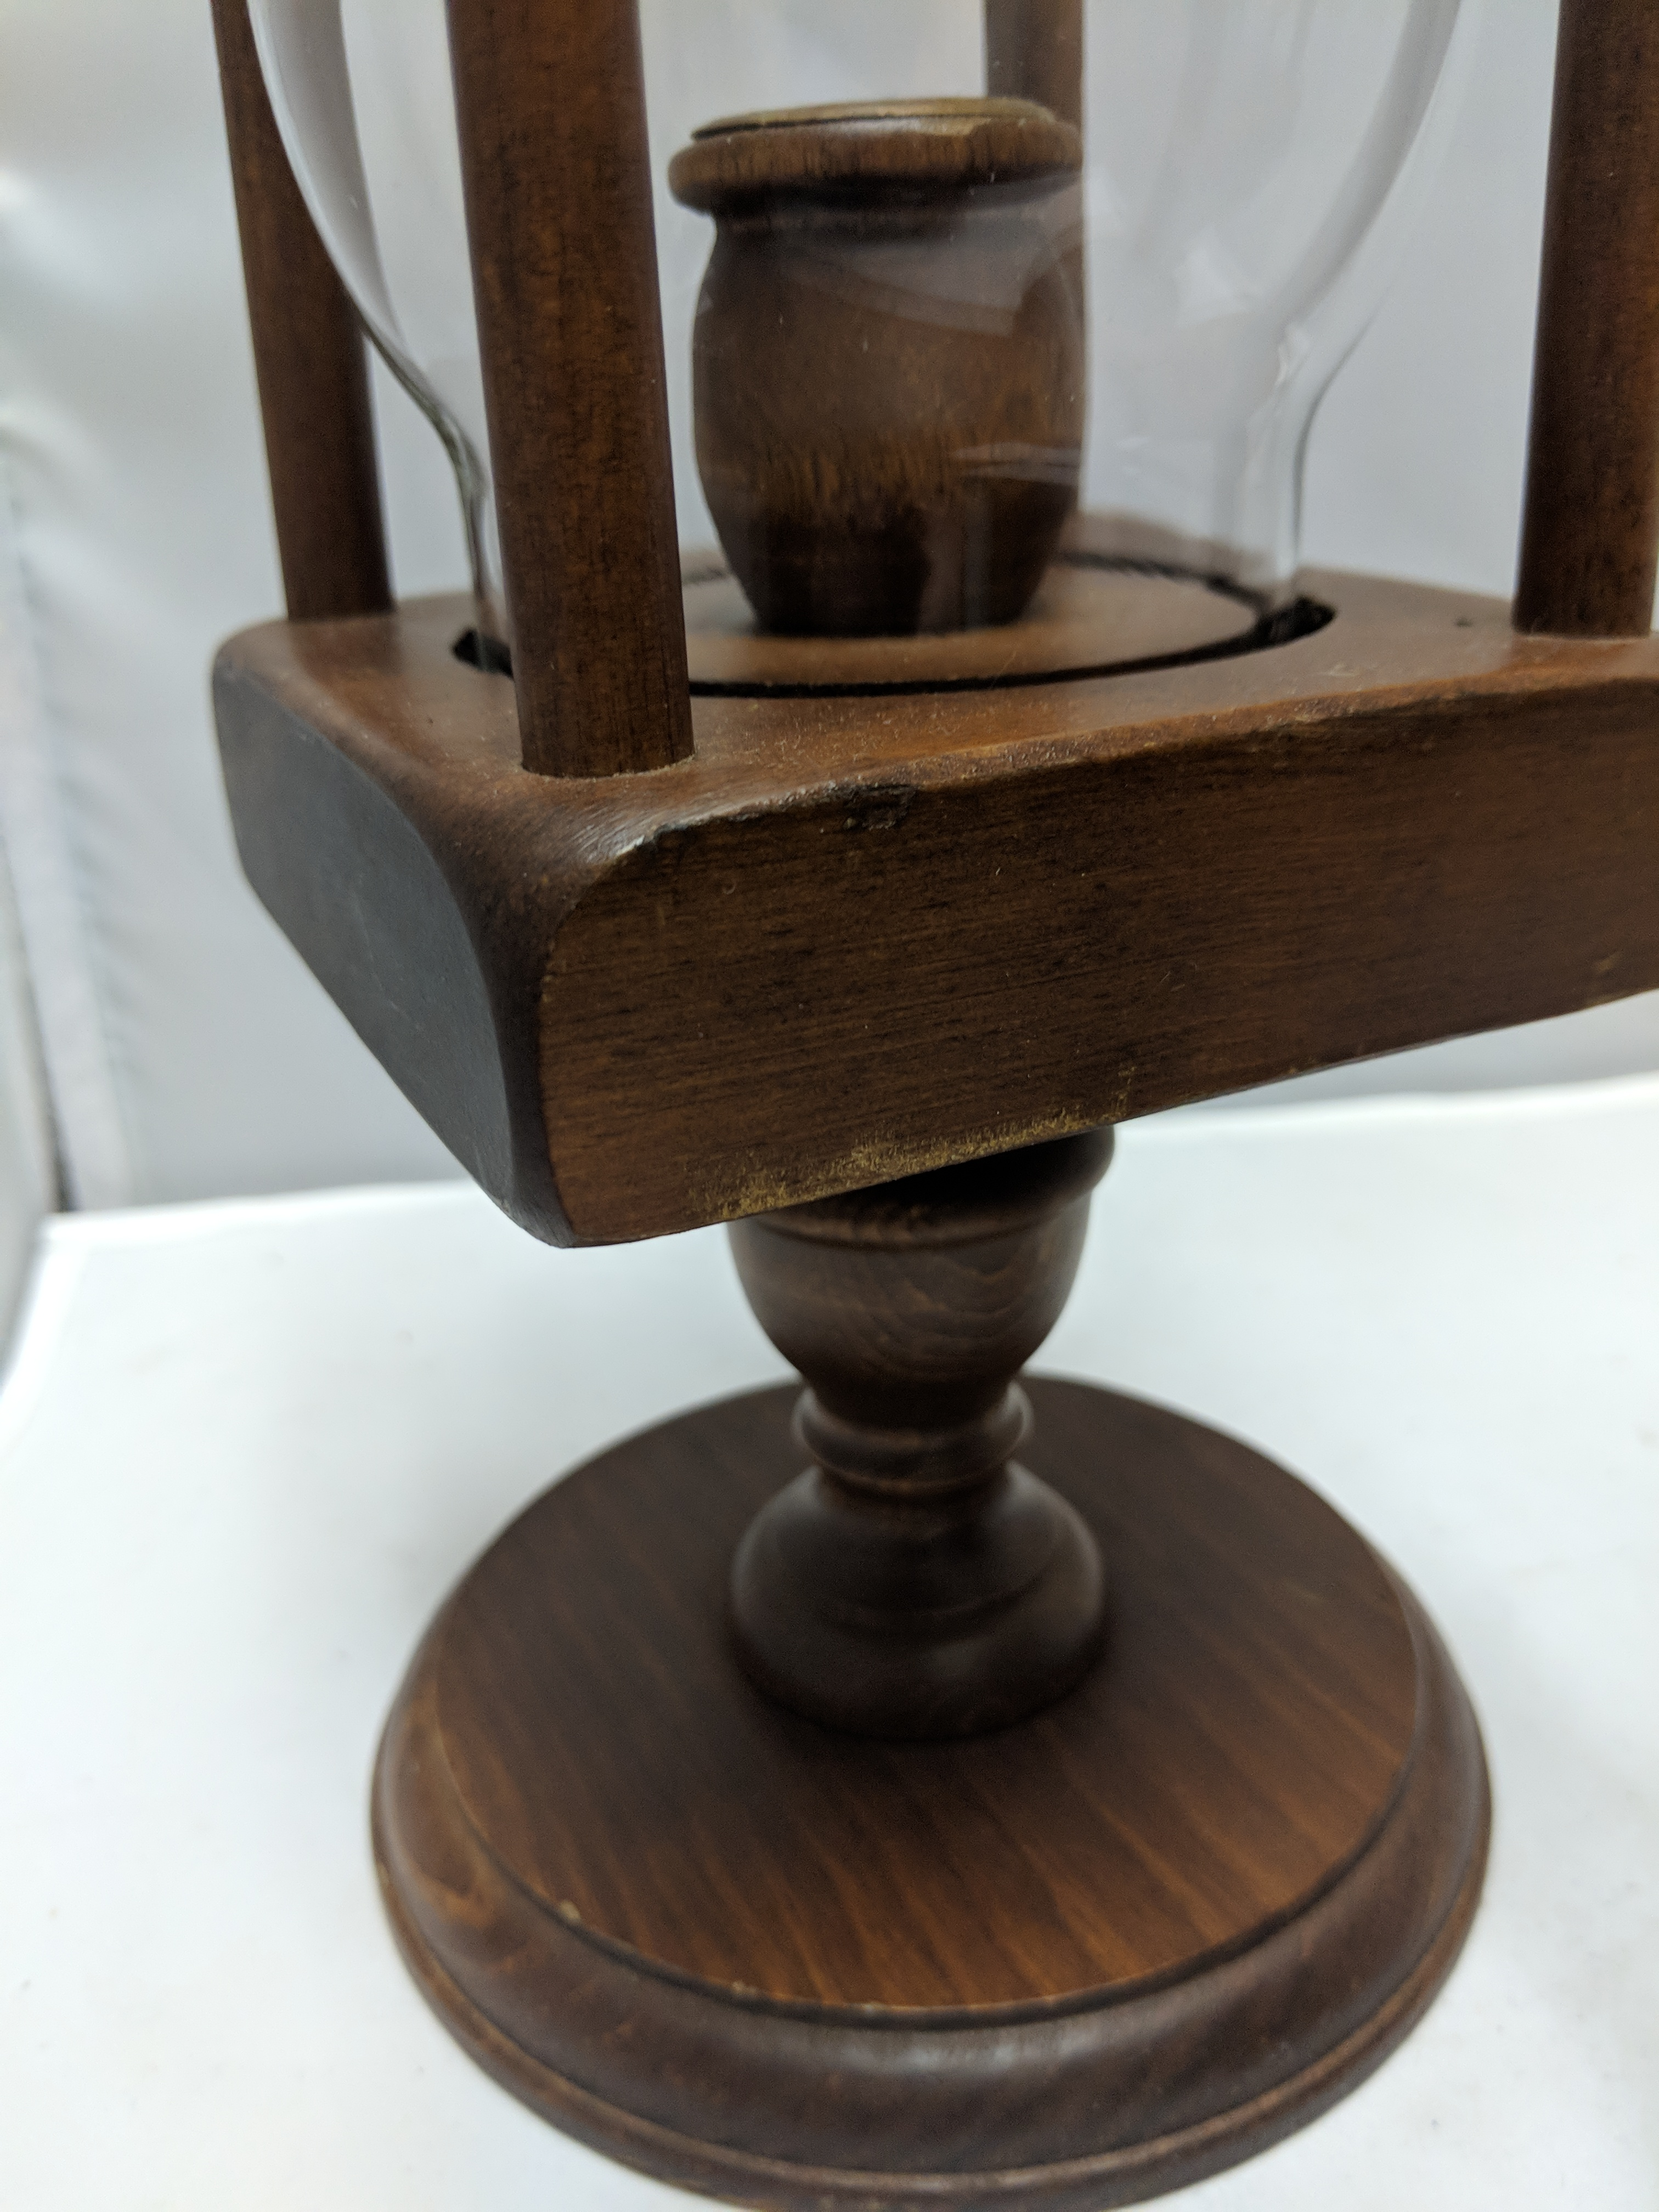 Pair-of-Wood-Candleholders-with-Glass-Shade_113624C.jpg